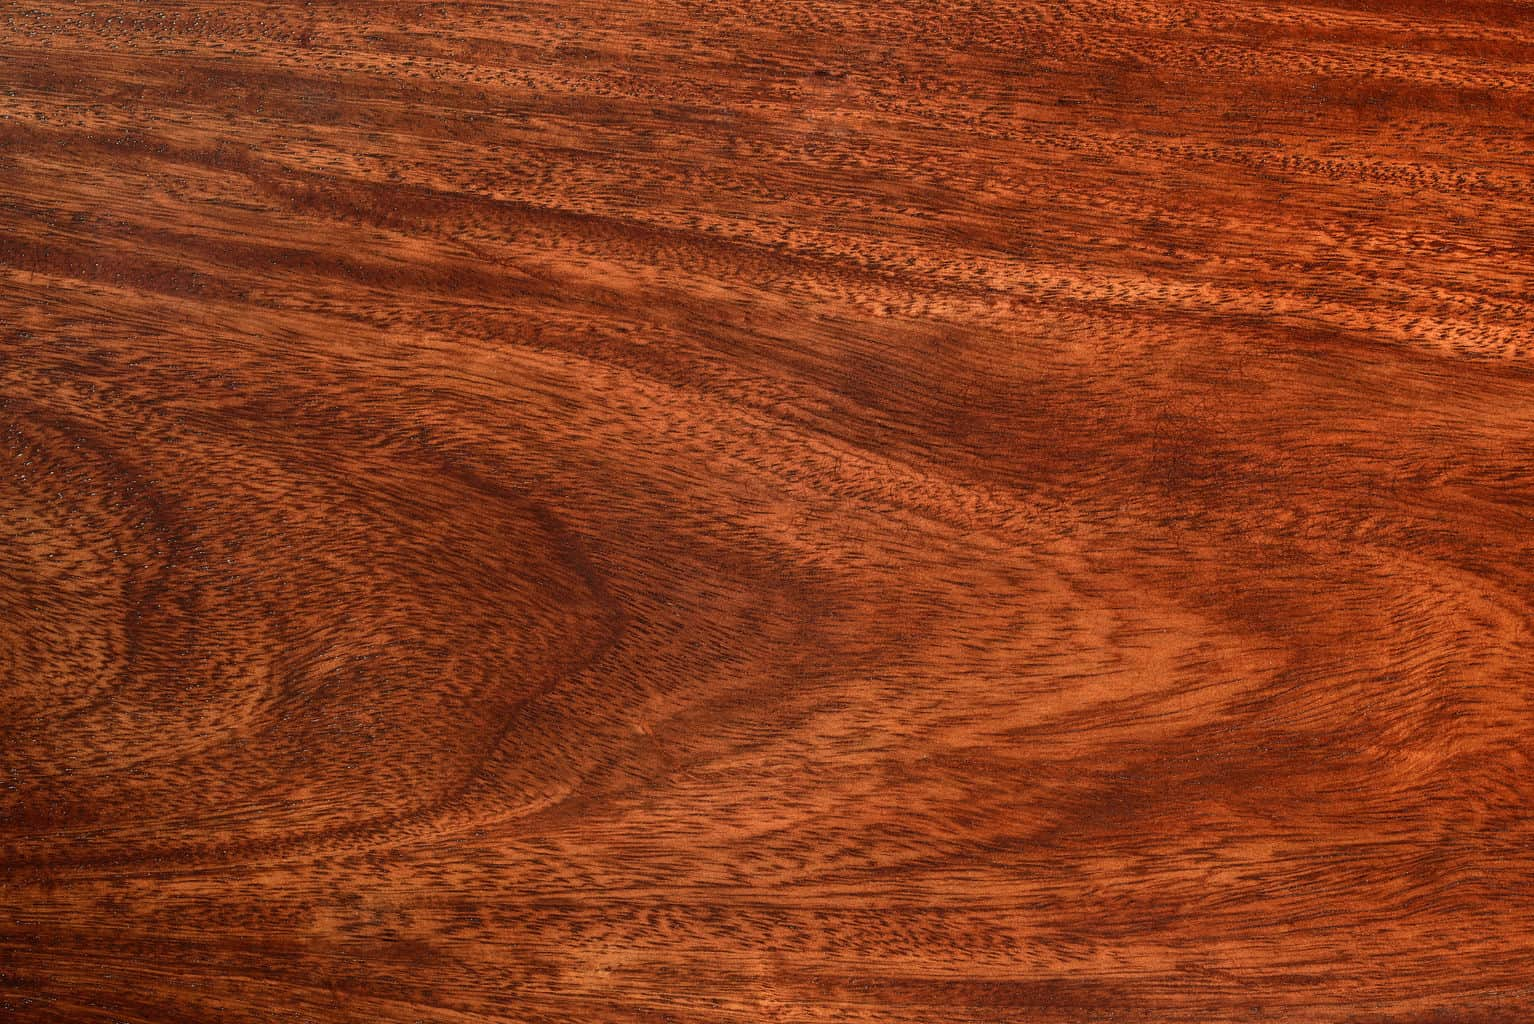 Replacing Floors Is Not So Why Deal With It Choosing Brazilian Walnut Means Floor That Will Last For Decades Literally